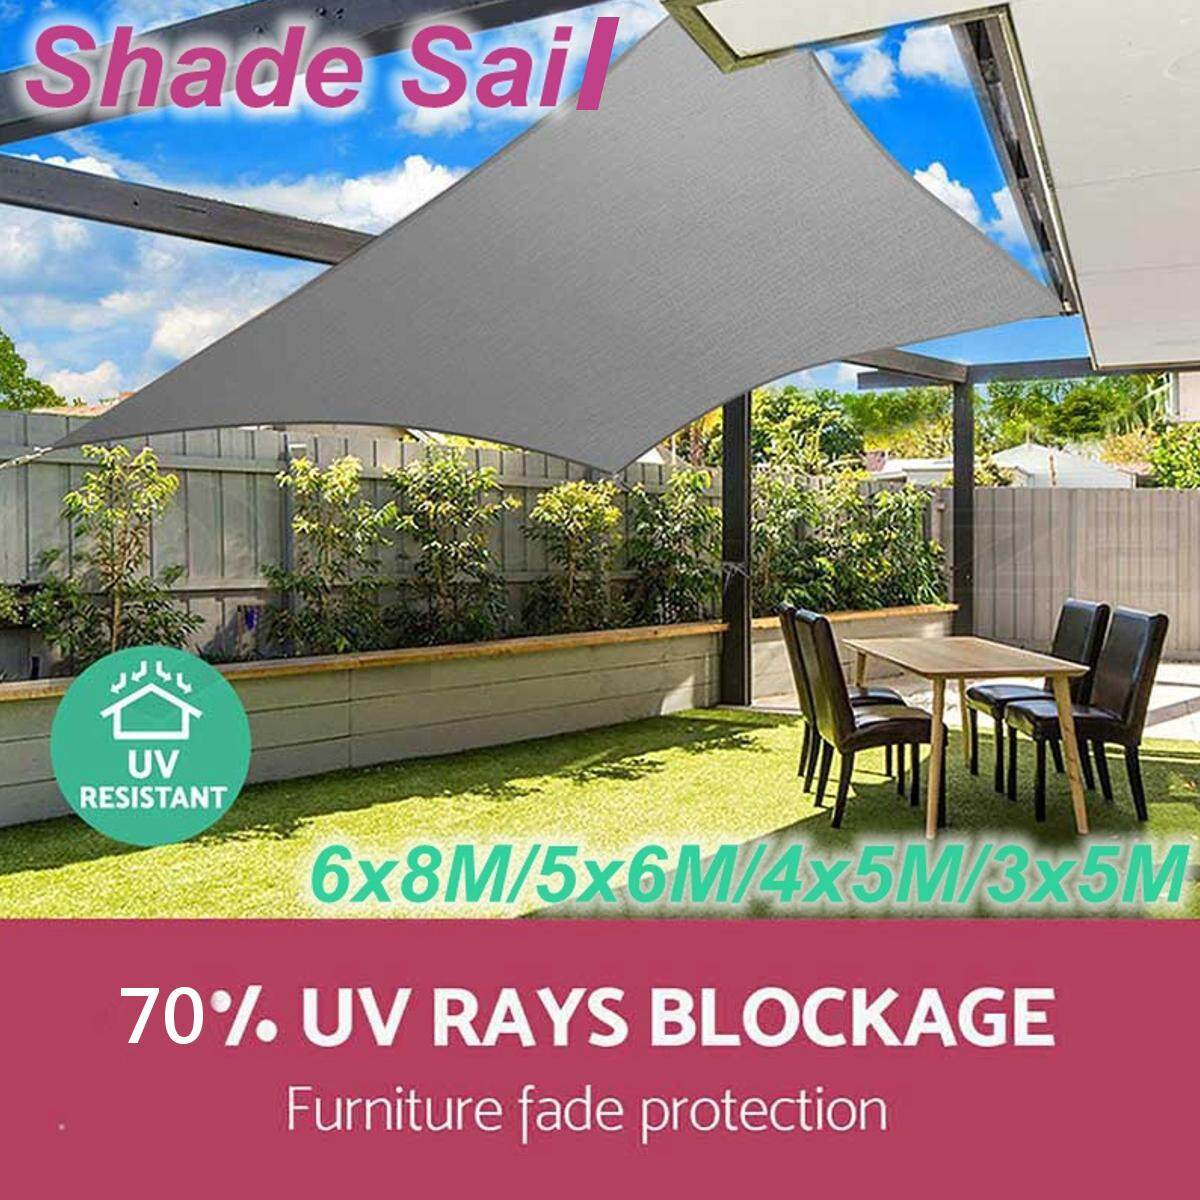 Model Awning Rumah 3 5m Sun Shade Sail Cloth Shadecloth Outdoor Canopy Awning Rectangle Square 280gsm Waterproof Anti 70 Uv